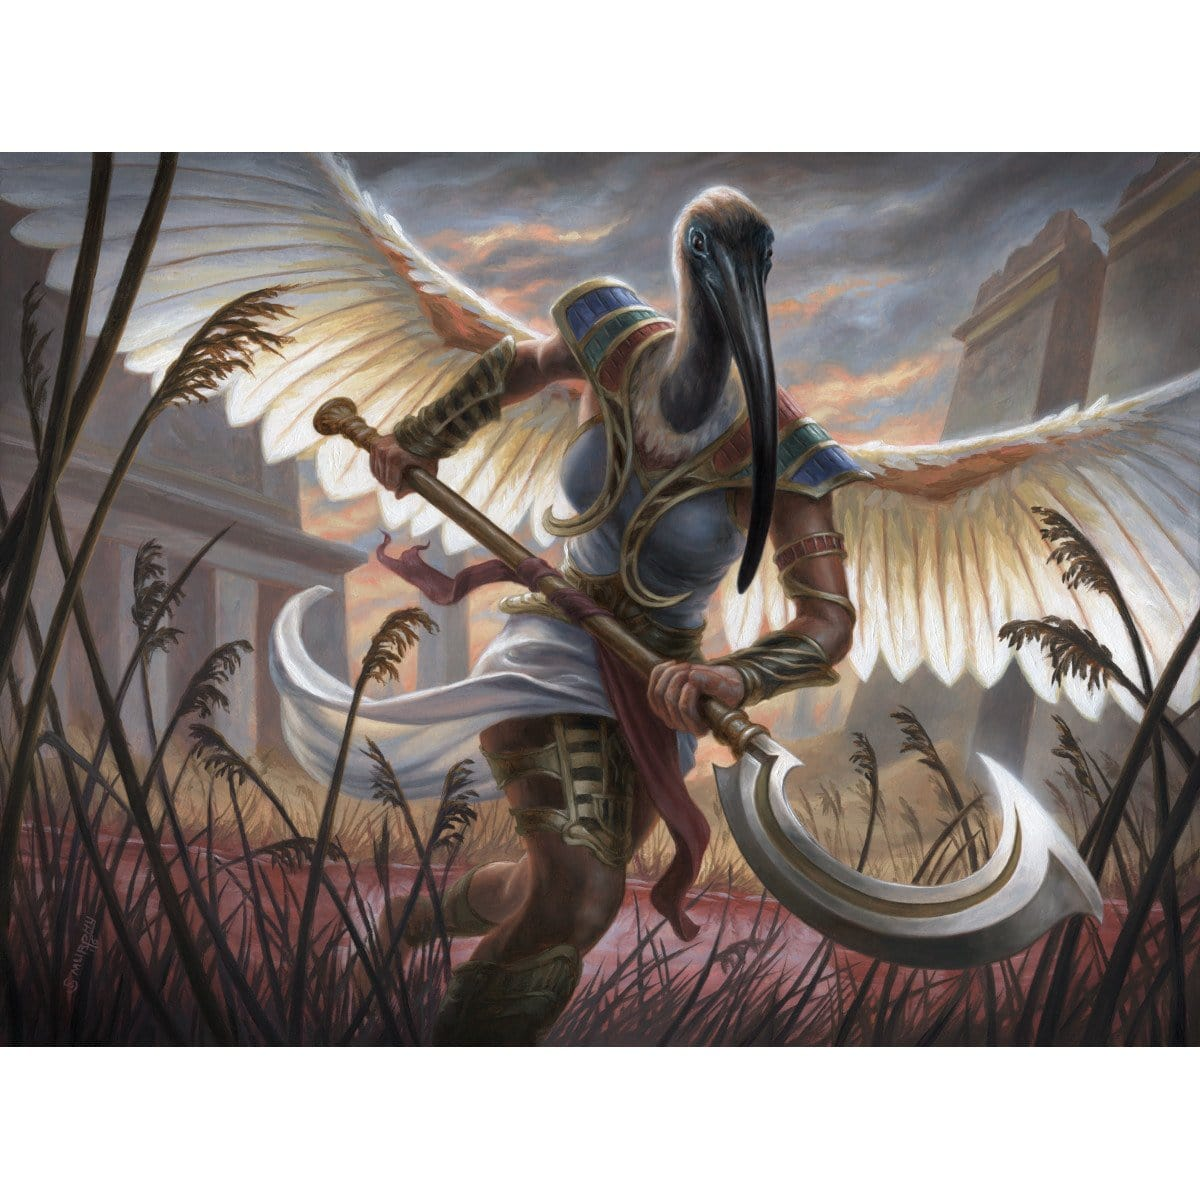 Aven Reedstalker Print - Print - Original Magic Art - Accessories for Magic the Gathering and other card games